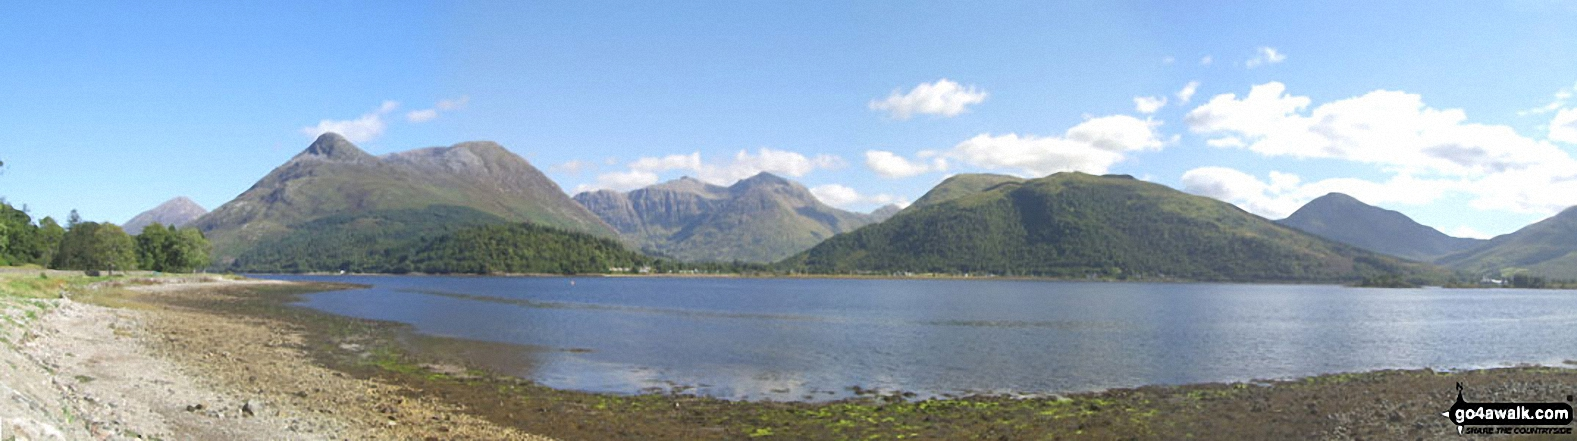 Looking across Loch Leven to The Pap of Glencoe, The Three Sisters of Glen Coe, Meall Mor and Beinn Fhionnlaidh